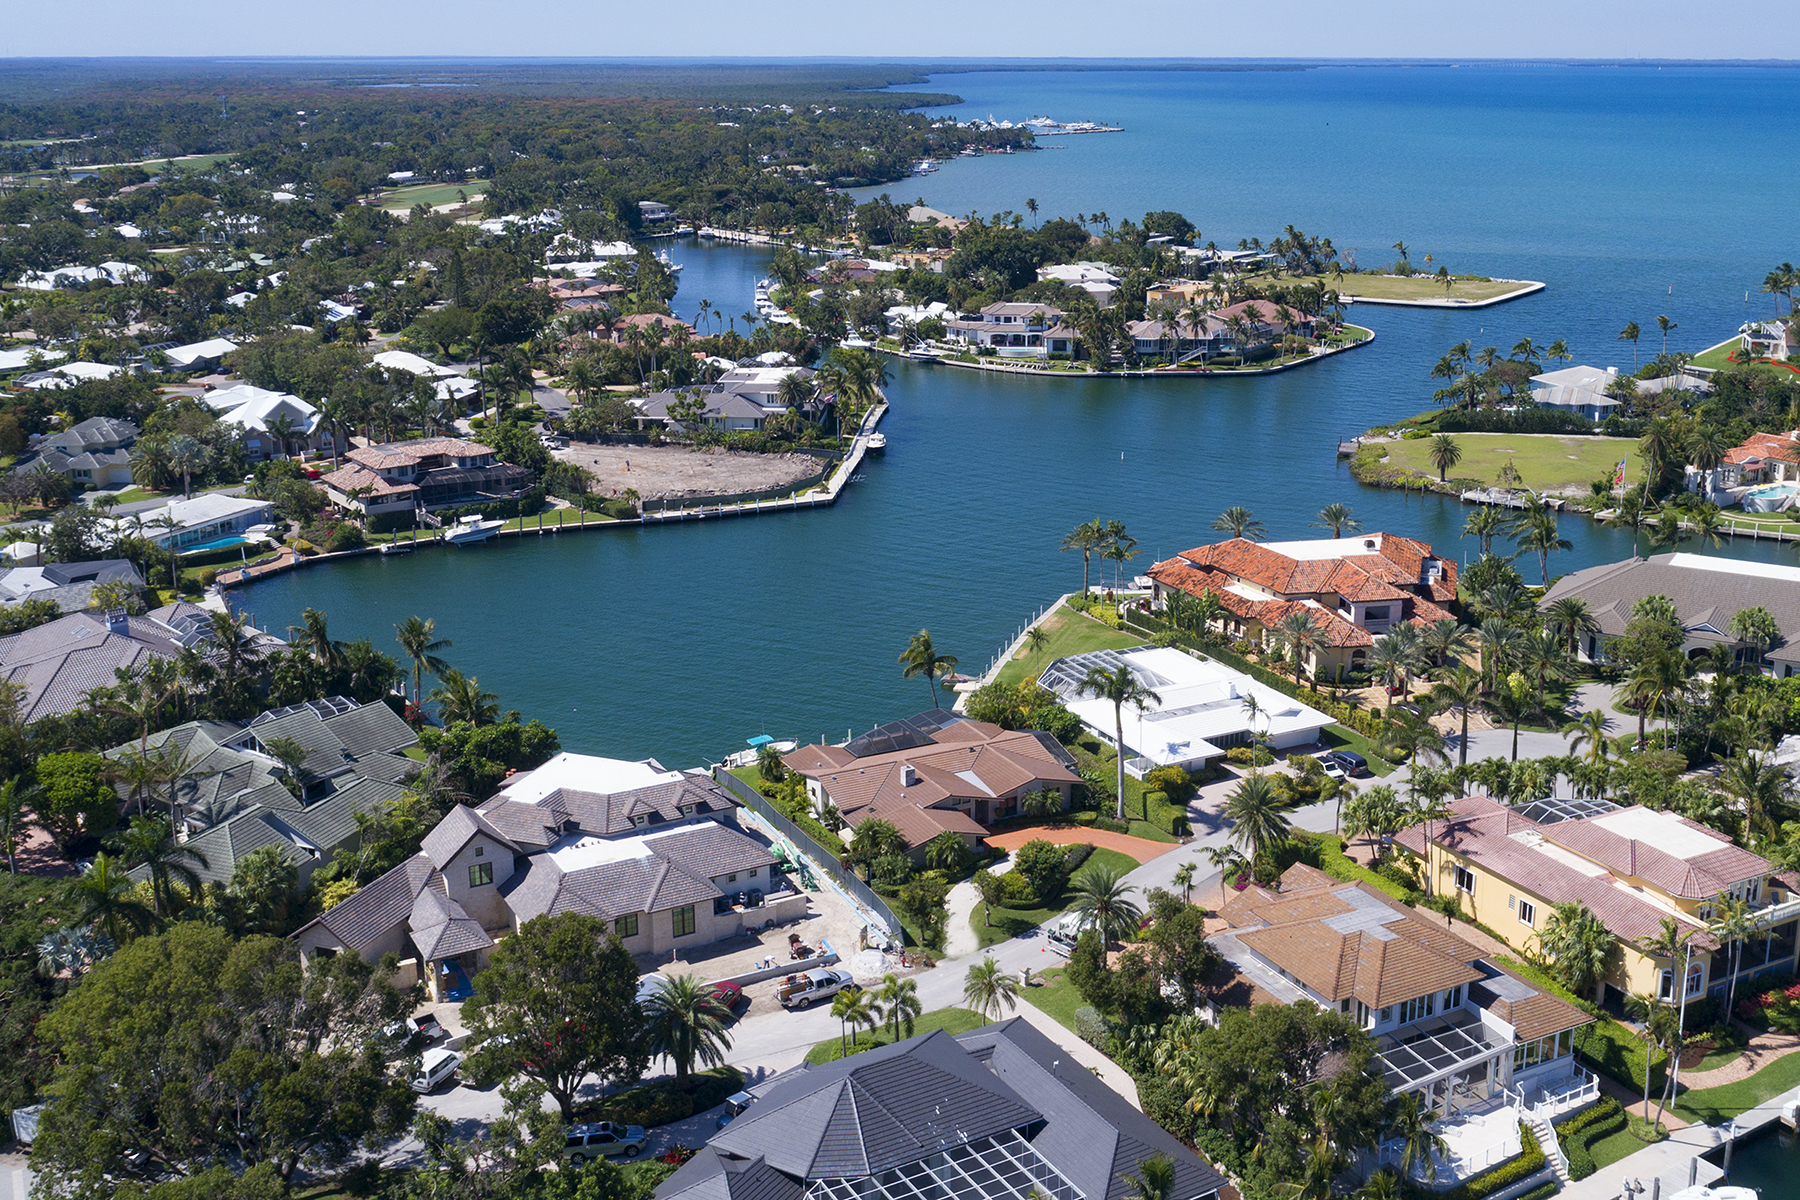 Single Family Homes for Sale at 3 Knoll Lane, Key Largo, FL 3 Knoll Lane Key Largo, Florida 33037 United States